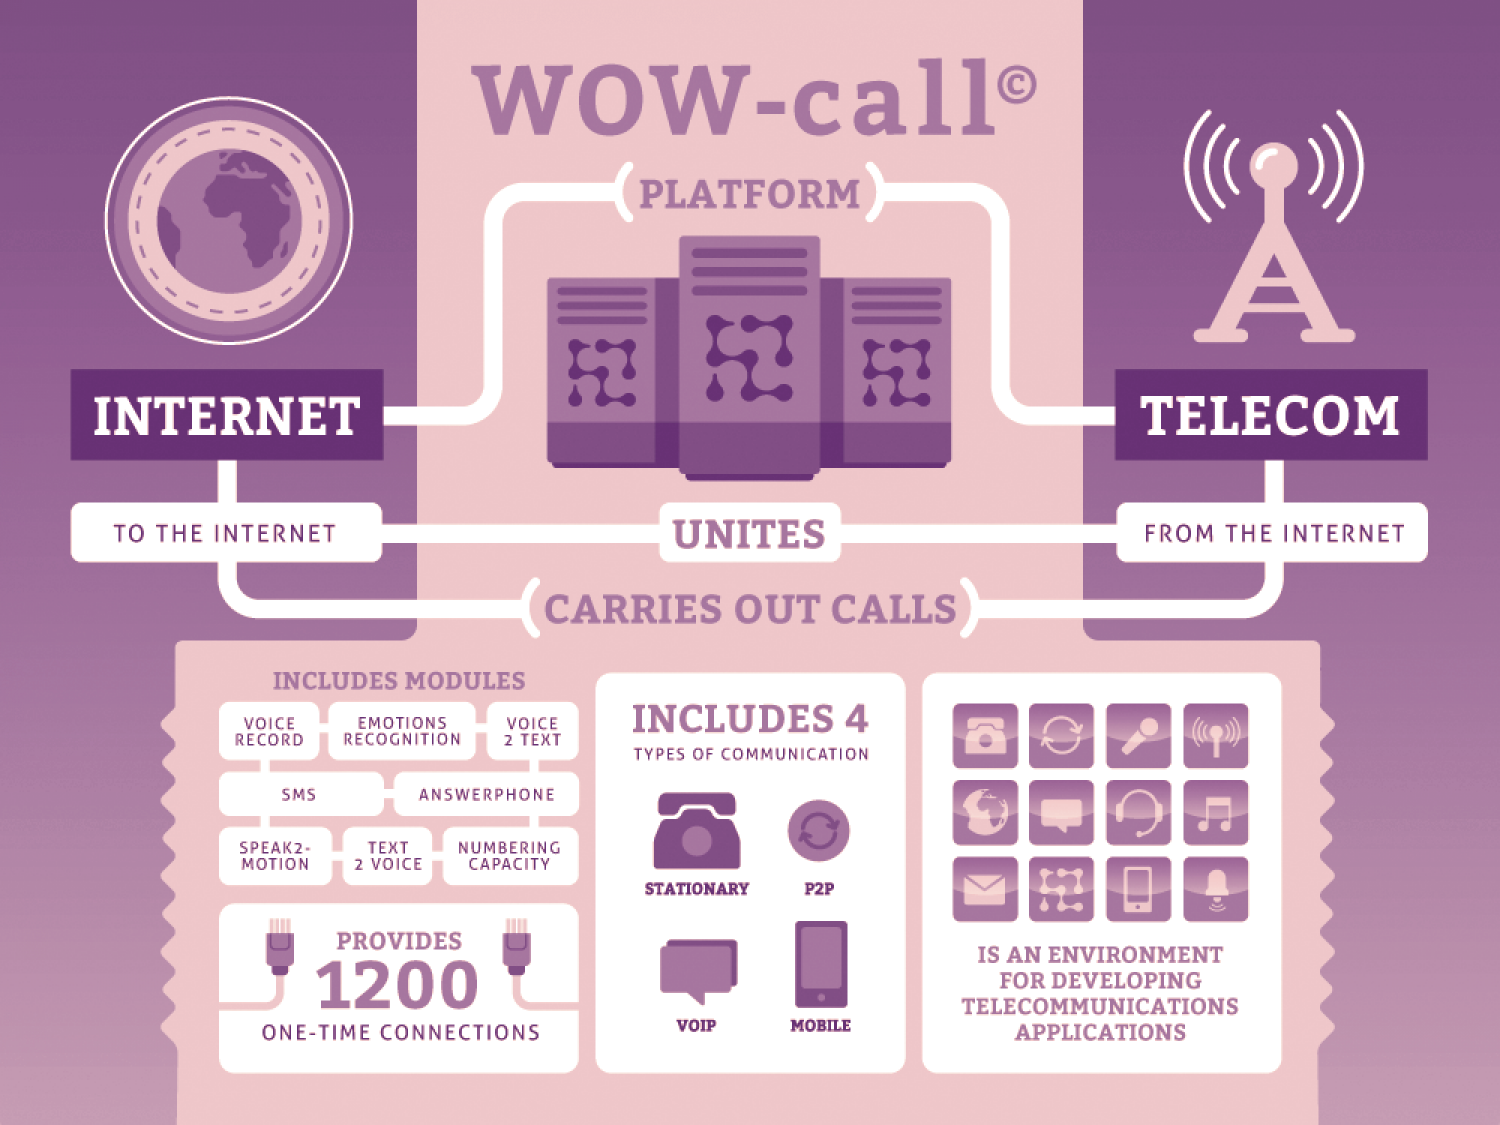 WOW-call © infographic Infographic